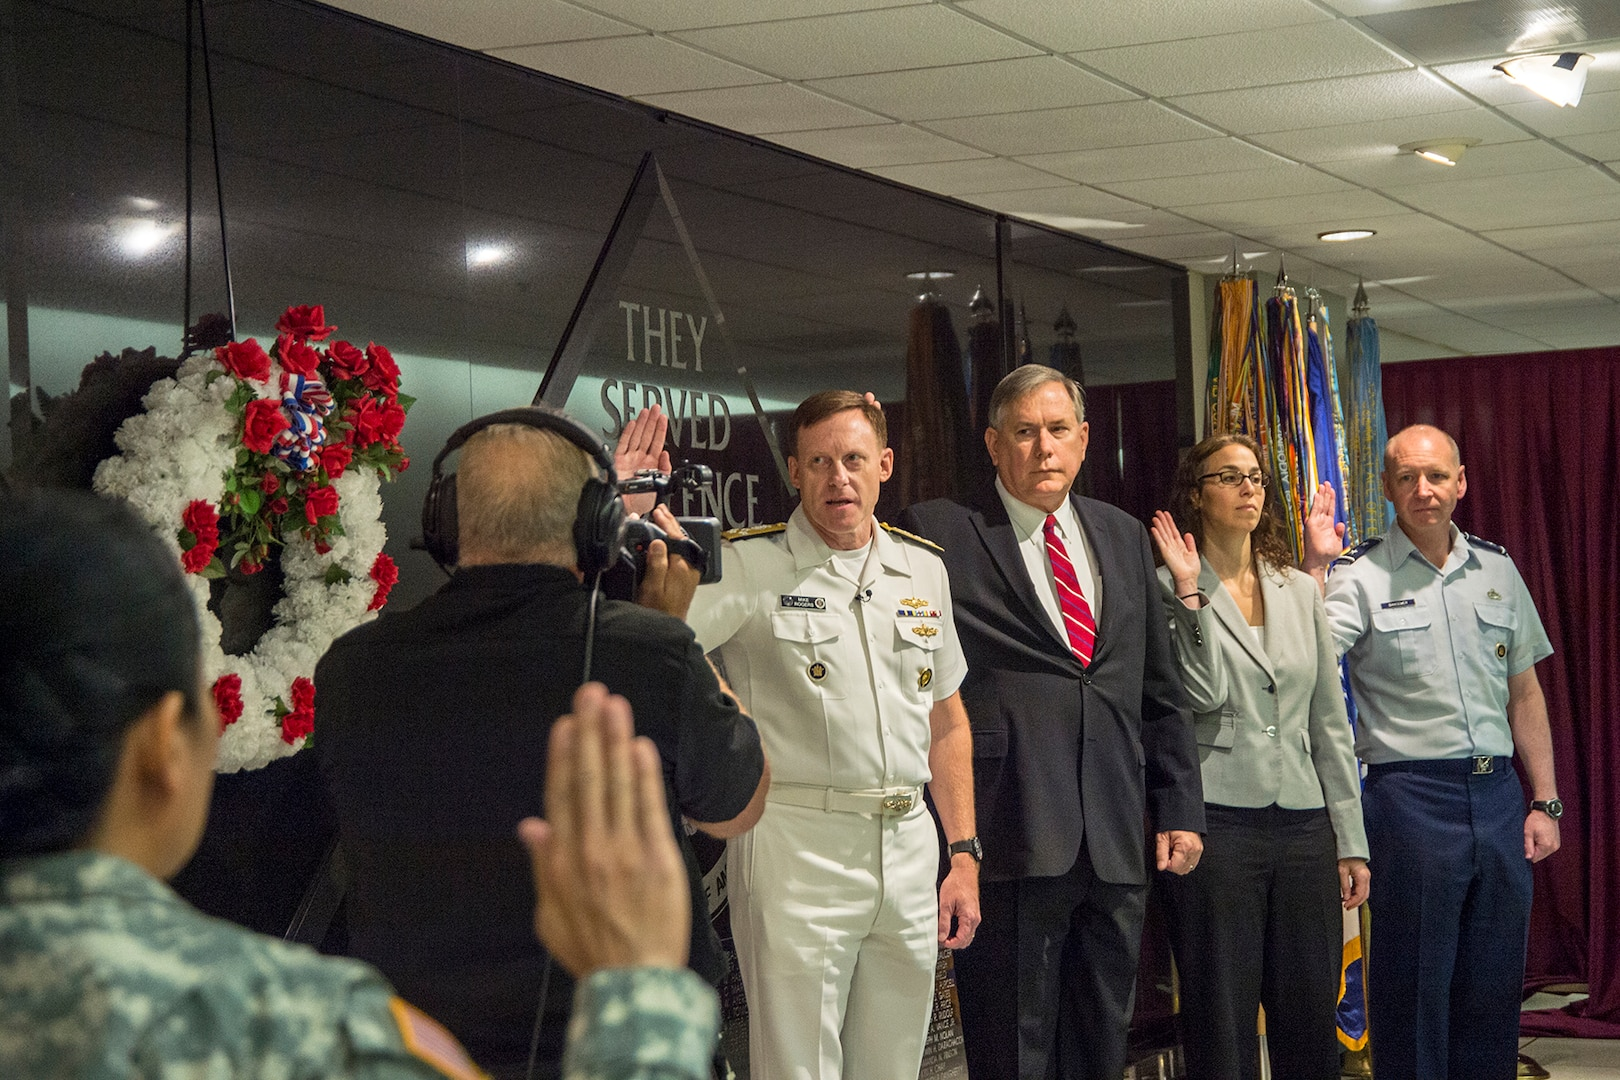 ADM Mike Rogers (l), Commander, U.S. Cyber Command/Director, National Security Agency/ Chief, Central Security Service (NSA/CSS), leads the NSA/CSS workforce in reciting the Oath of Office. He is accompanied by (l-r) NSA Deputy Director Rick Ledgett, NSA Executive Director Corin Stone, and CSS Deputy Chief Maj Gen John Bansemer.